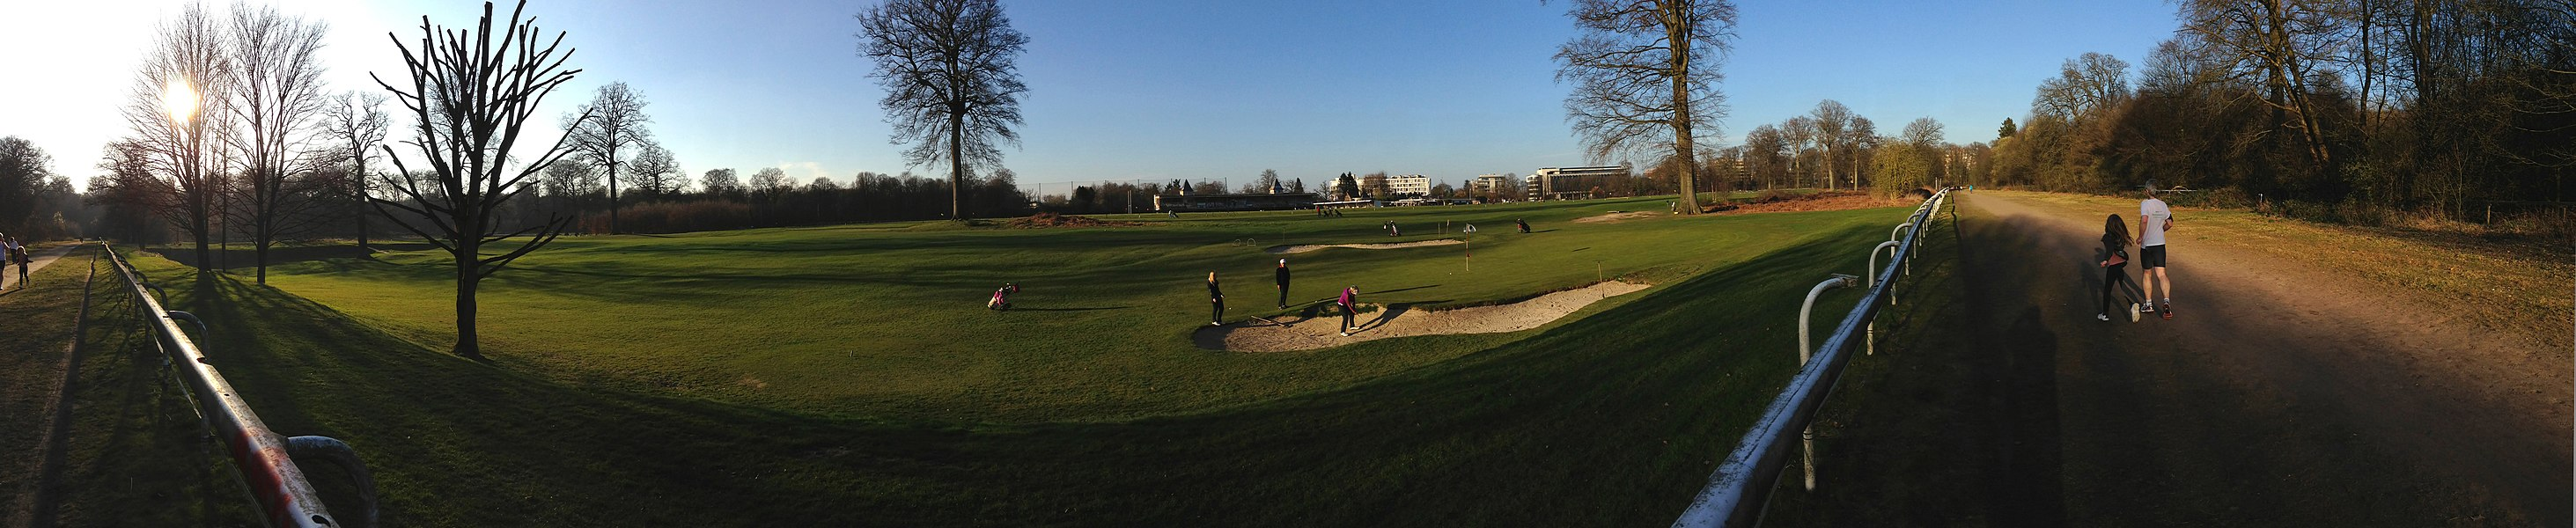 Brussels Golf Club